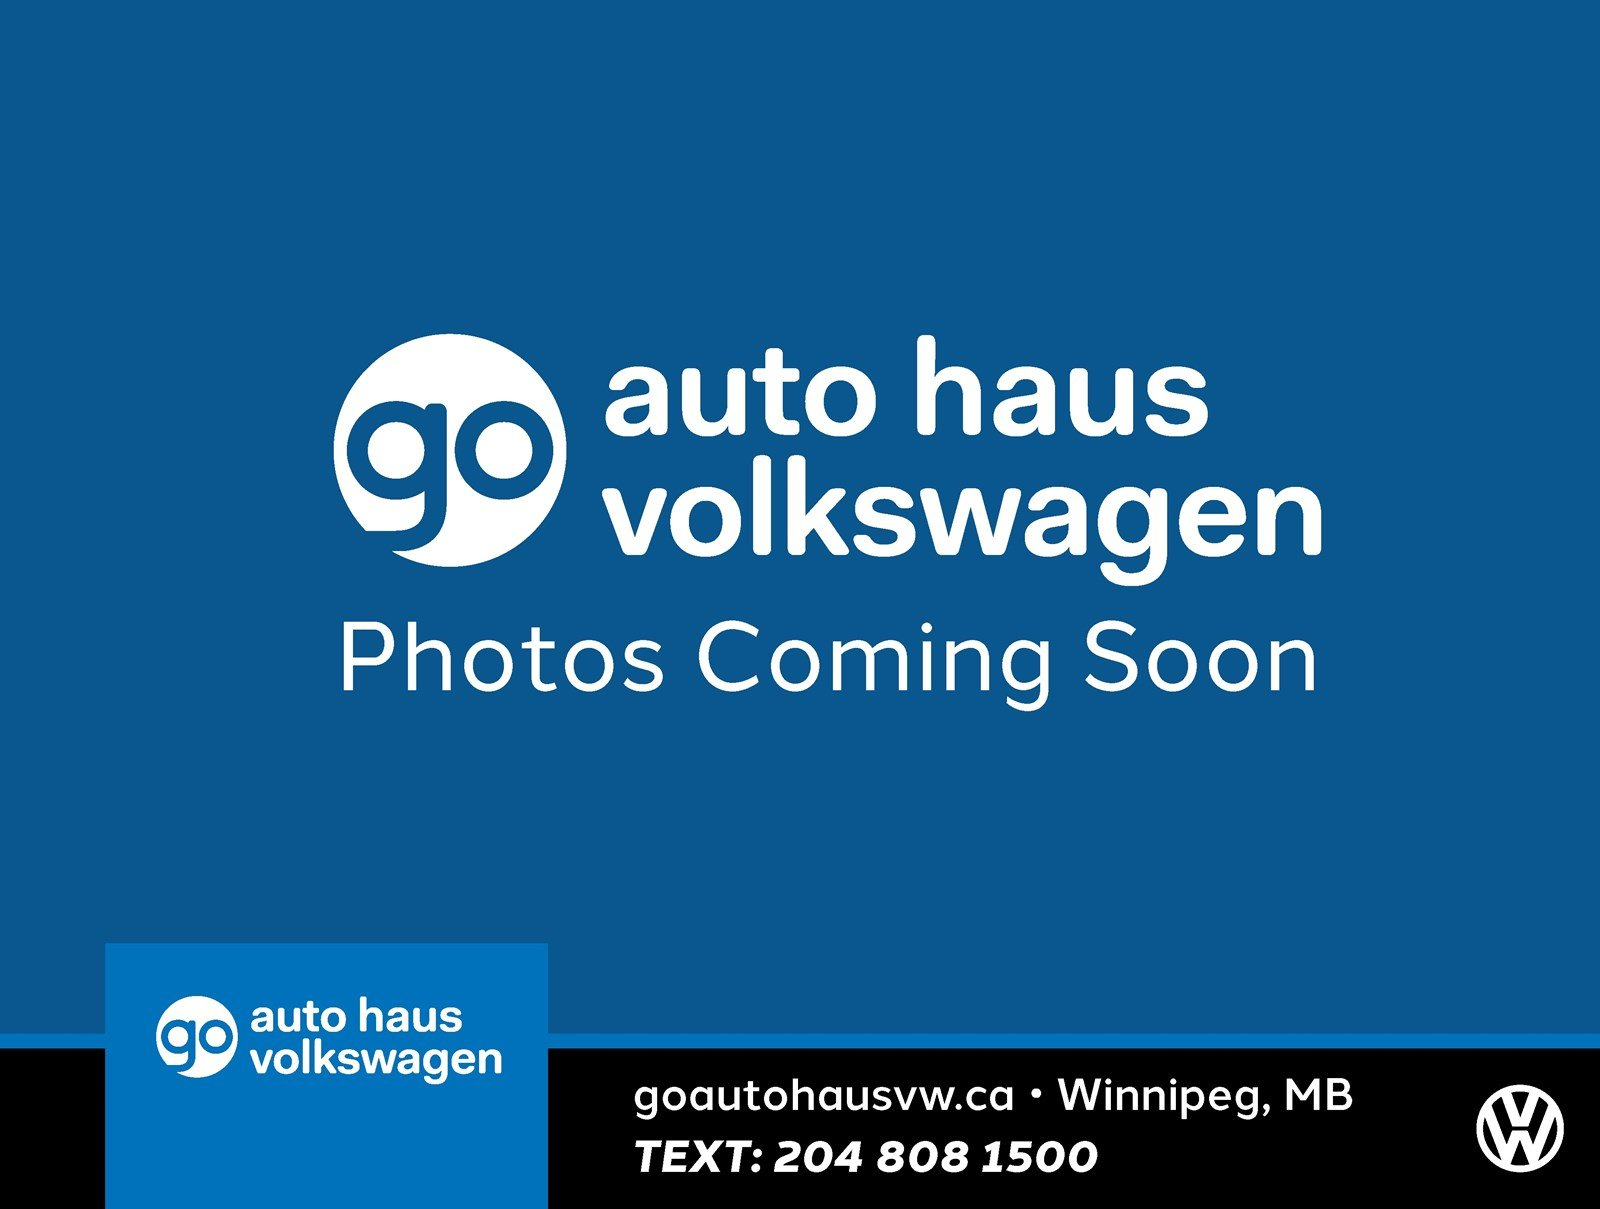 Certified Pre-Owned 2017 Volkswagen Golf SportWagen Trendline 4Motion AWD w/ App Connect 0.9% Financing Available OAC.